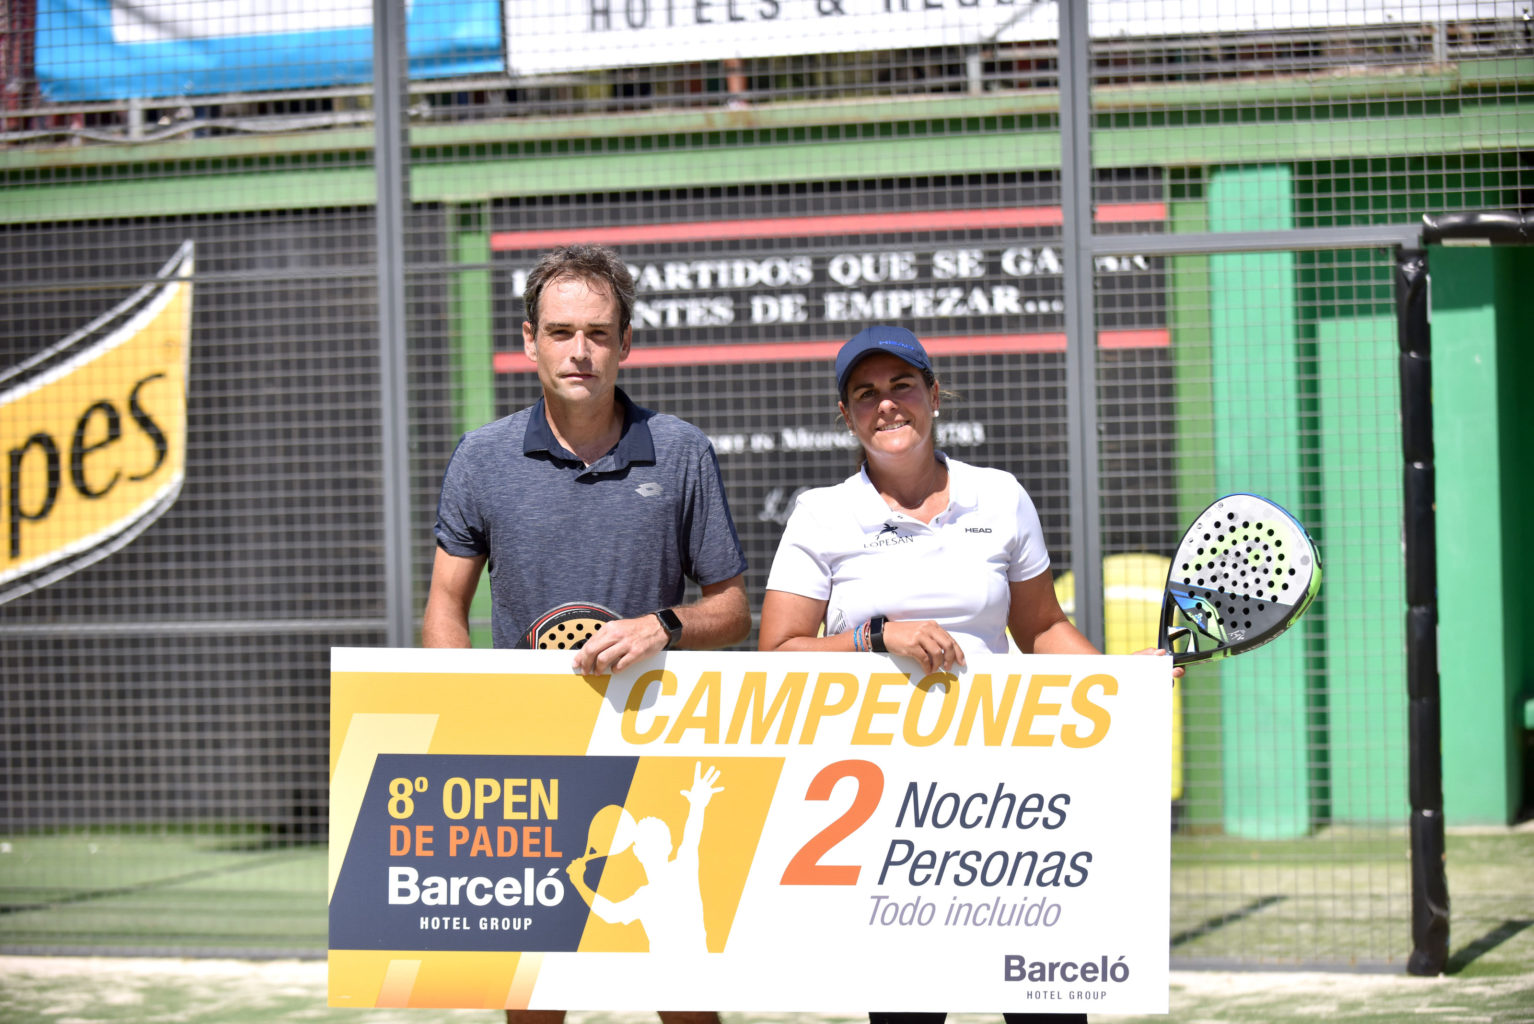 Campeones Mixtos Open de Pádel Barceló Hotel Group